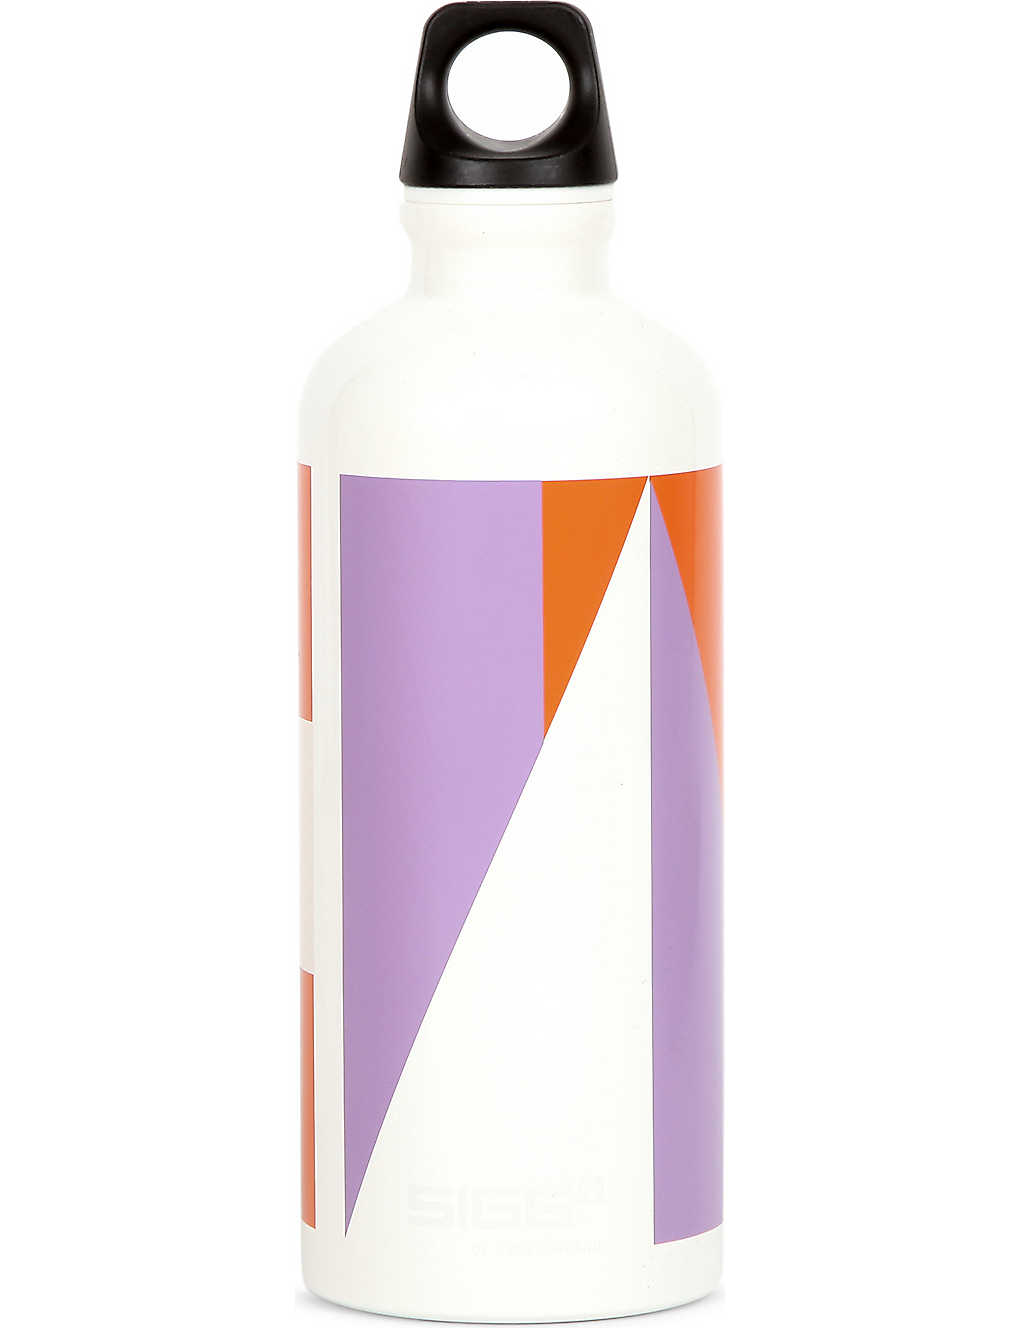 SELFRIDGES: SIGG M2Malletier aluminium water bottle 600ml